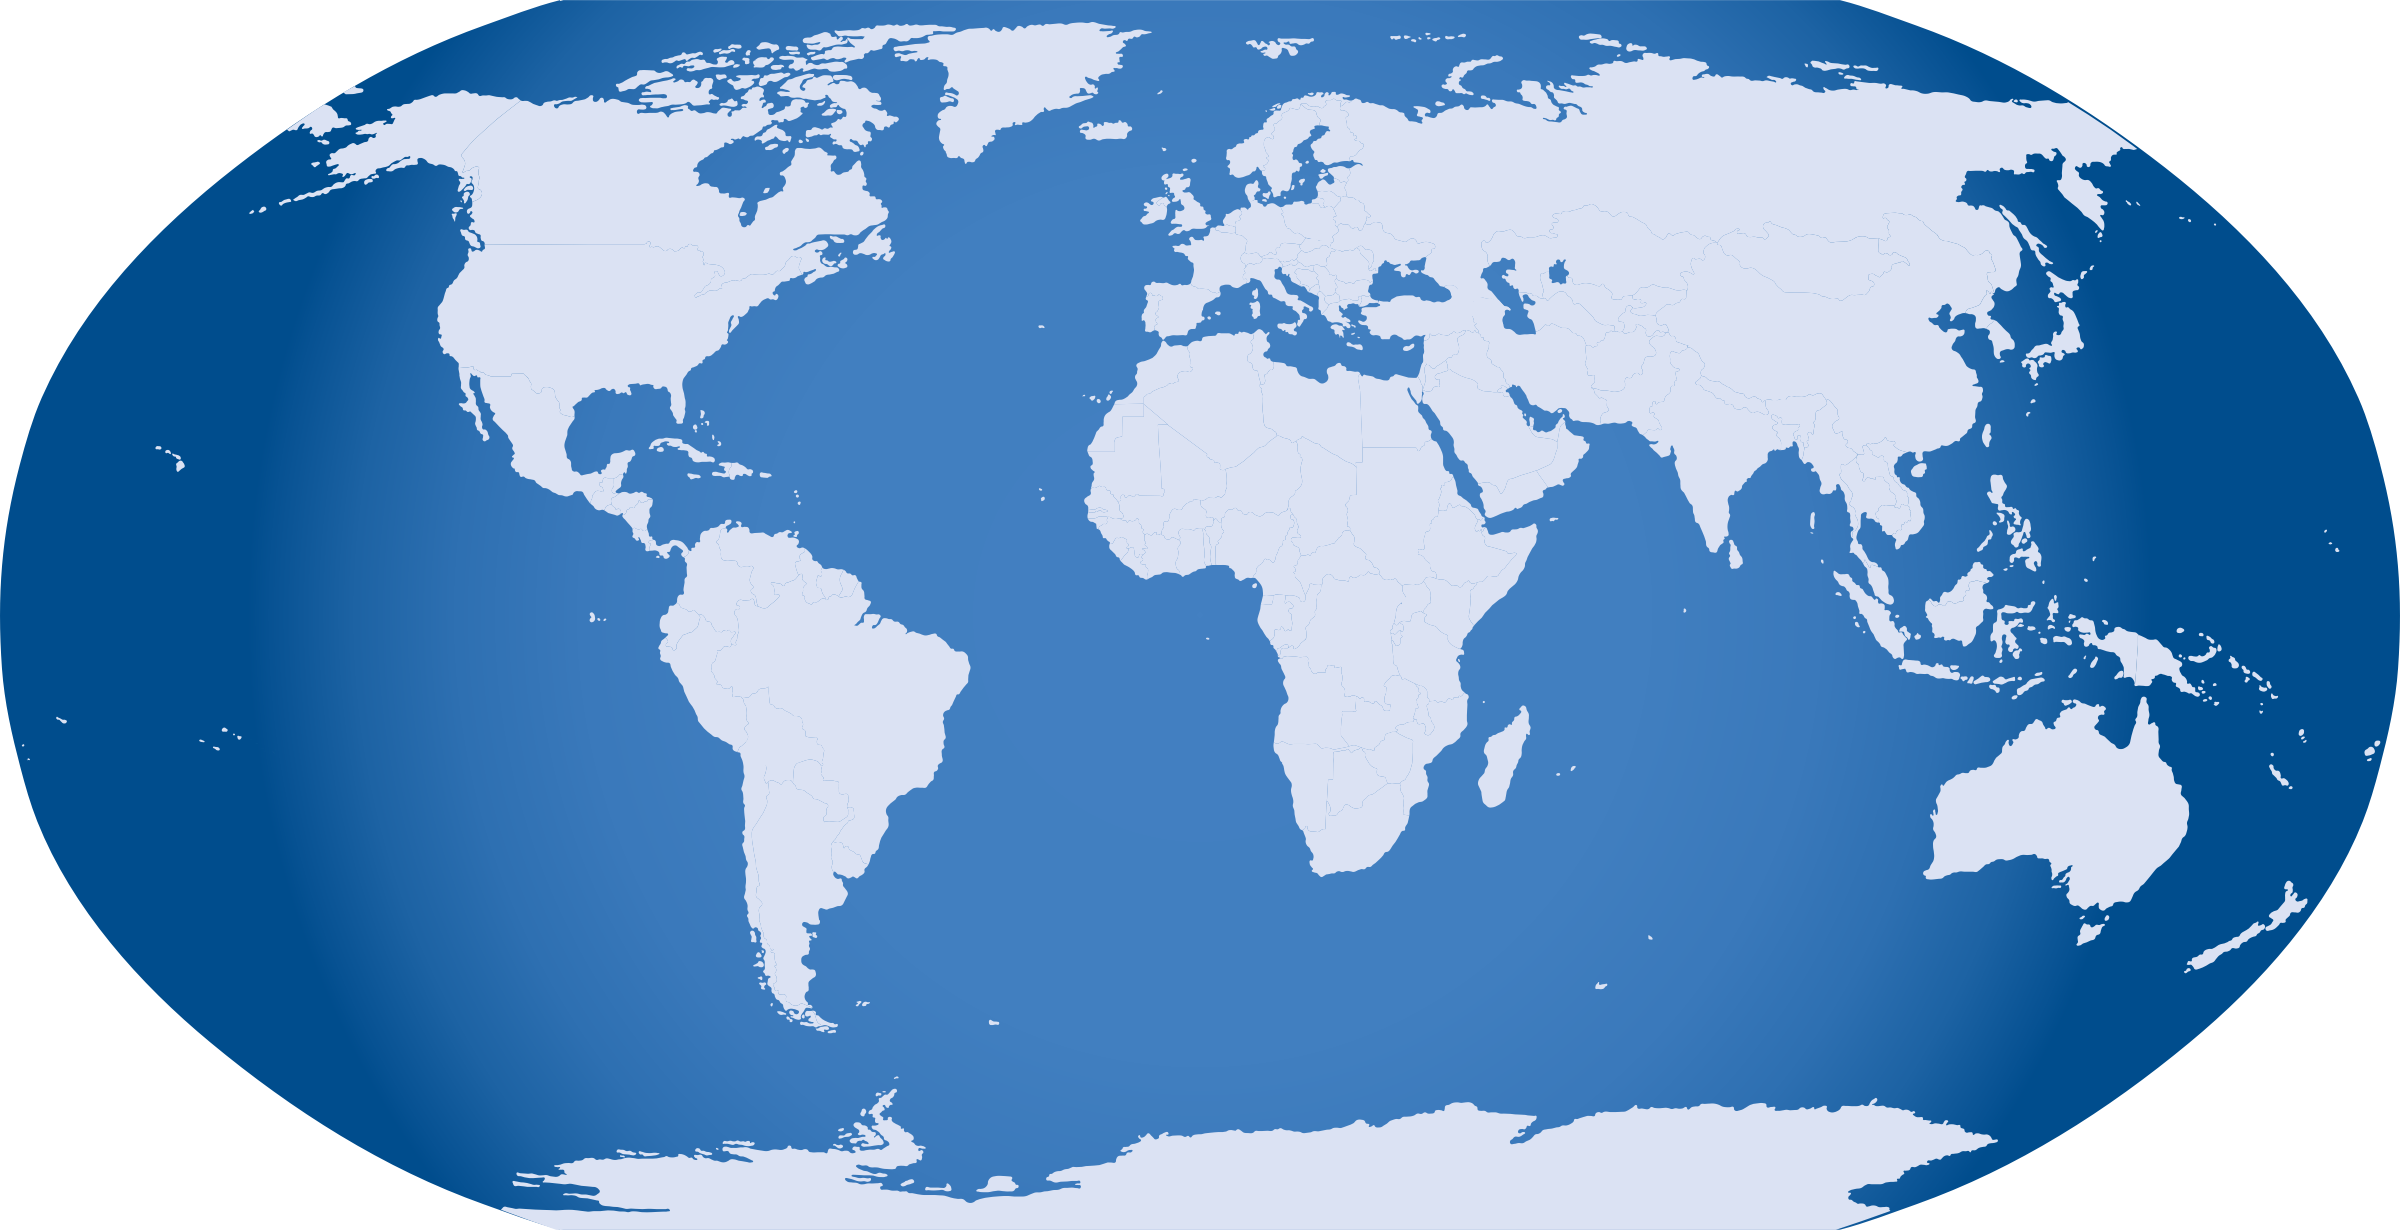 Clipart blue world map big image png gumiabroncs Choice Image